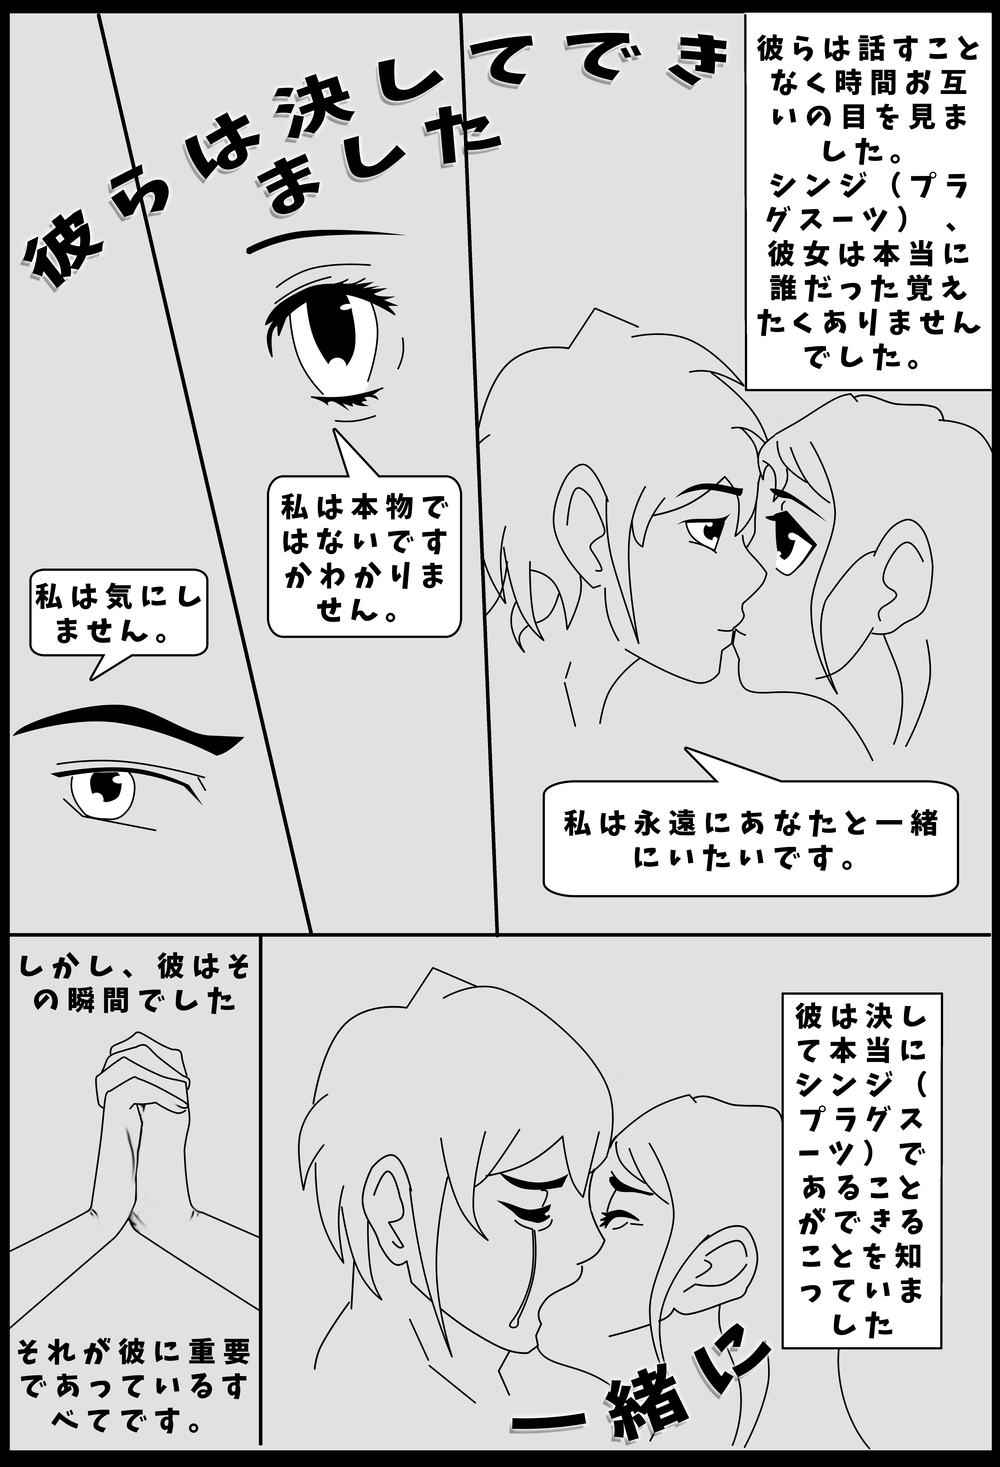 "A page from a manga I made. The original idea is for this to be a manga story that is told throughout designs on shirts. This first page is about two lovers who want to be together but cannot because. as the female character states,""she is not real."" This is a rough sketch that was done in a few hours that still needs finalizing lines and detailing."